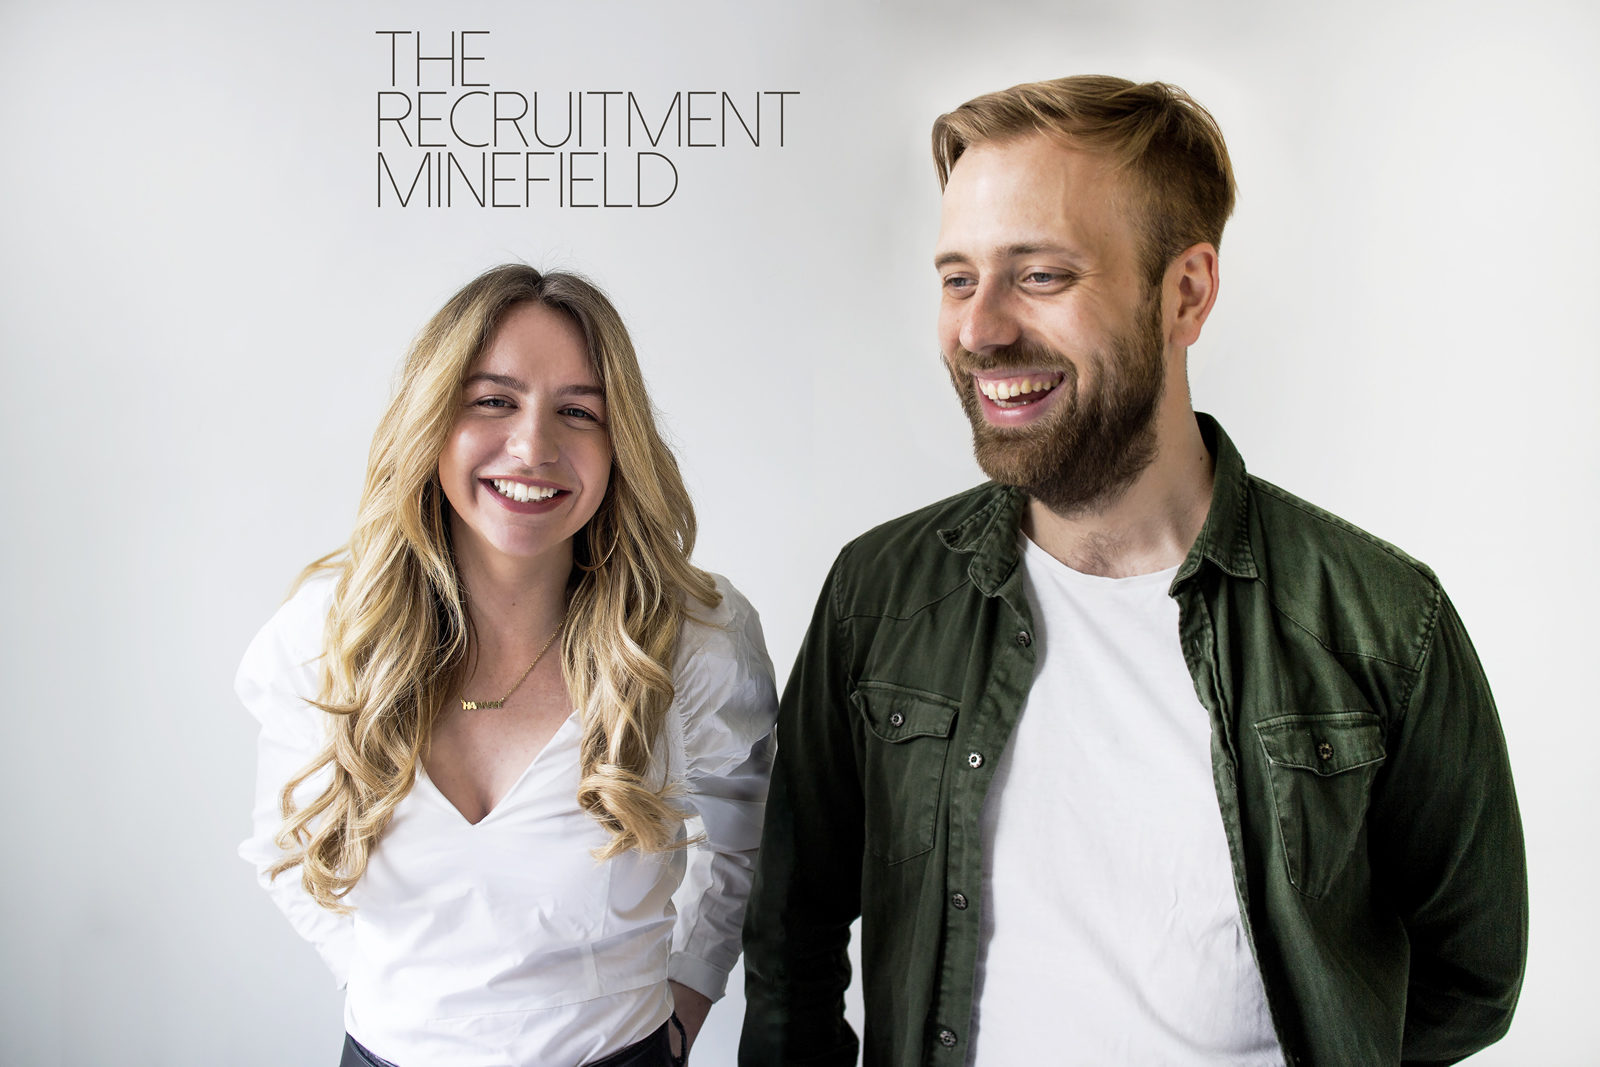 The Recruitment Minefield Podcast